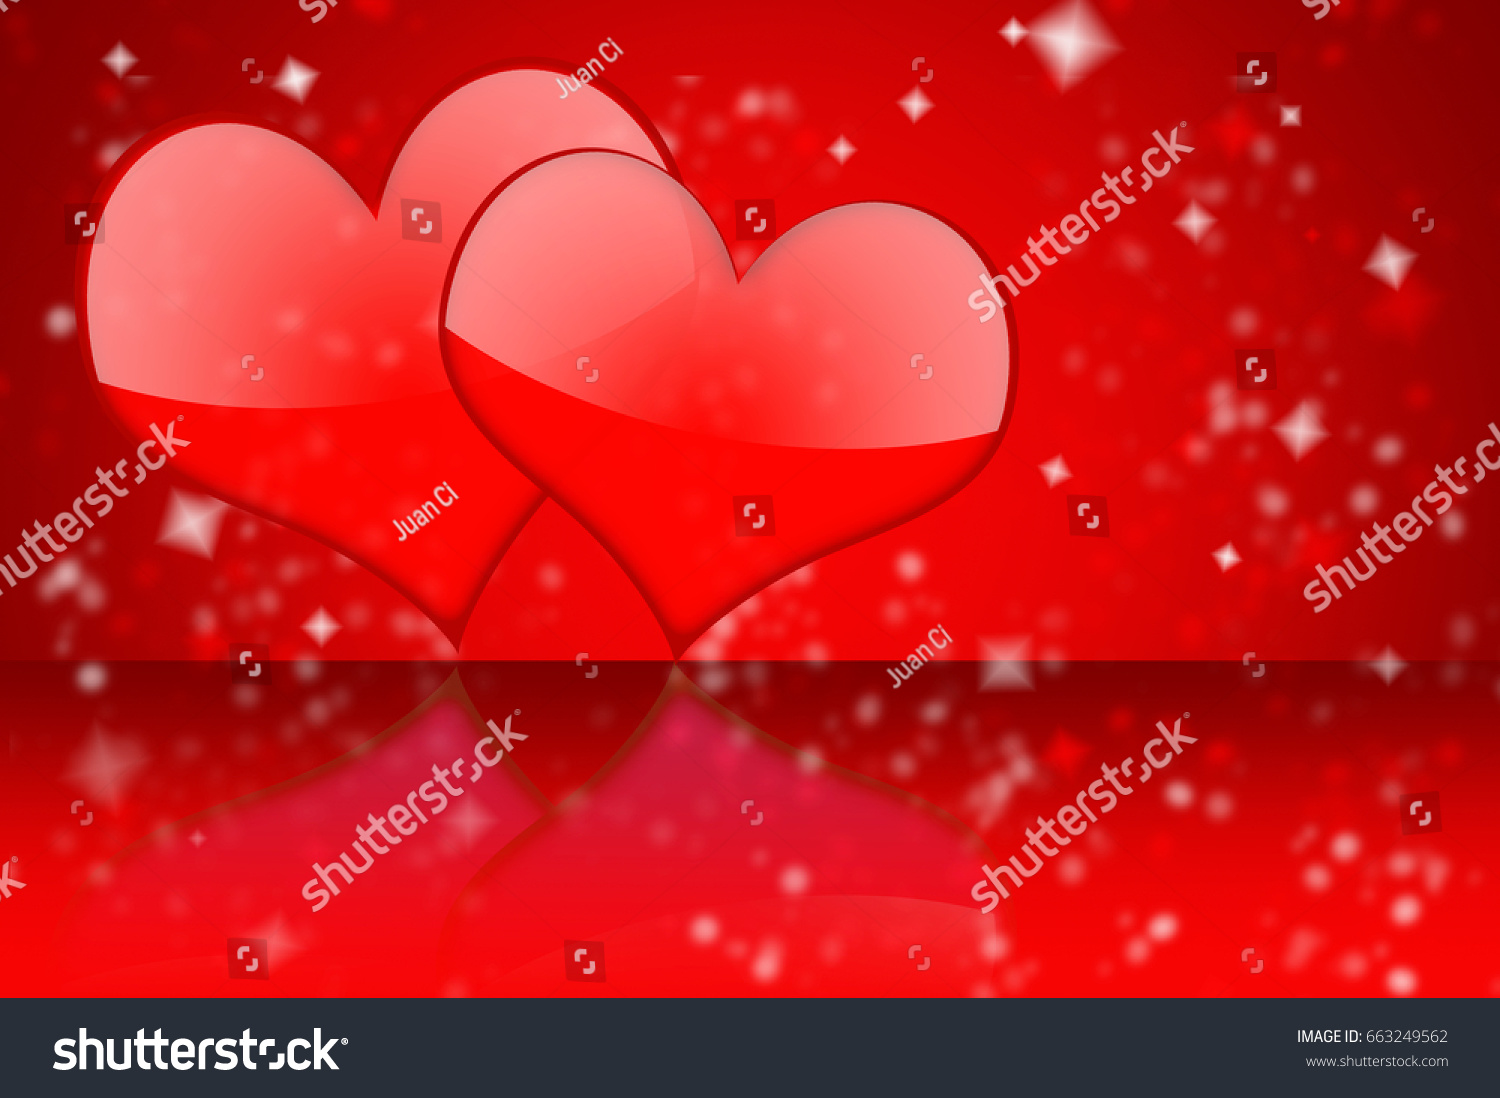 Two Red Hearts Some Sparks Reflected Stock Illustration 663249562